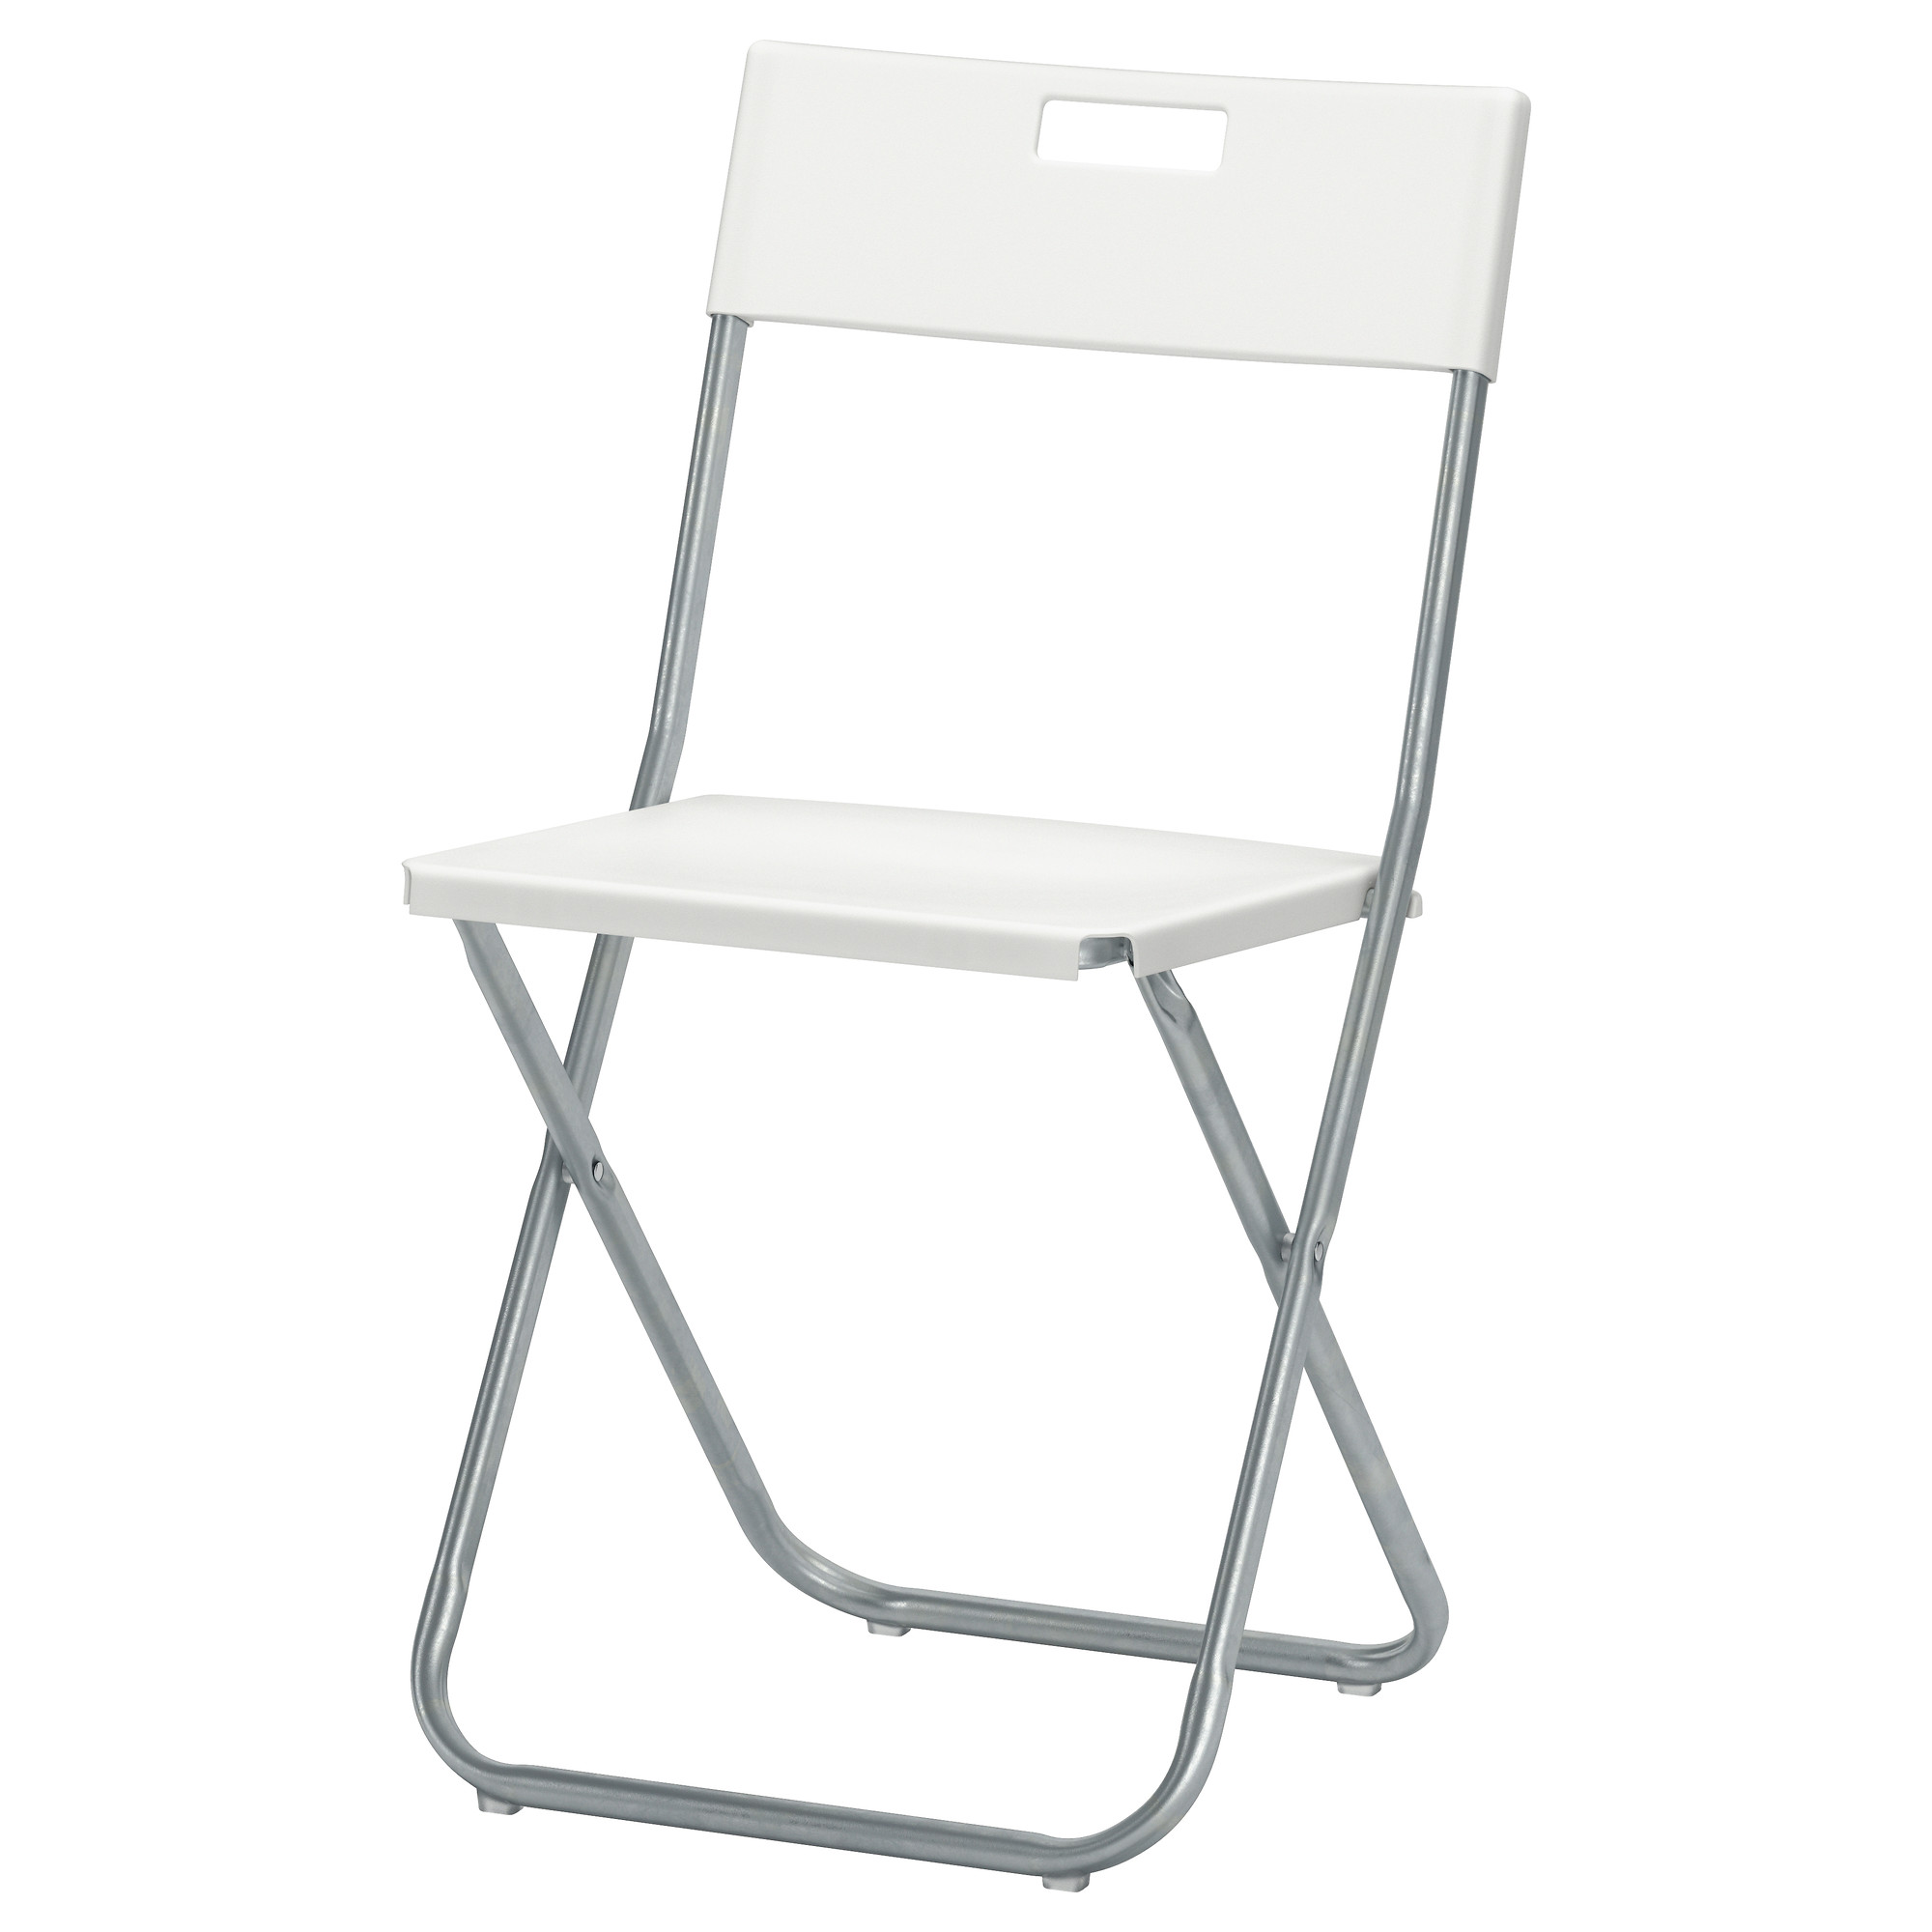 folding chairs gunde folding chair - ikea RHJQLIO